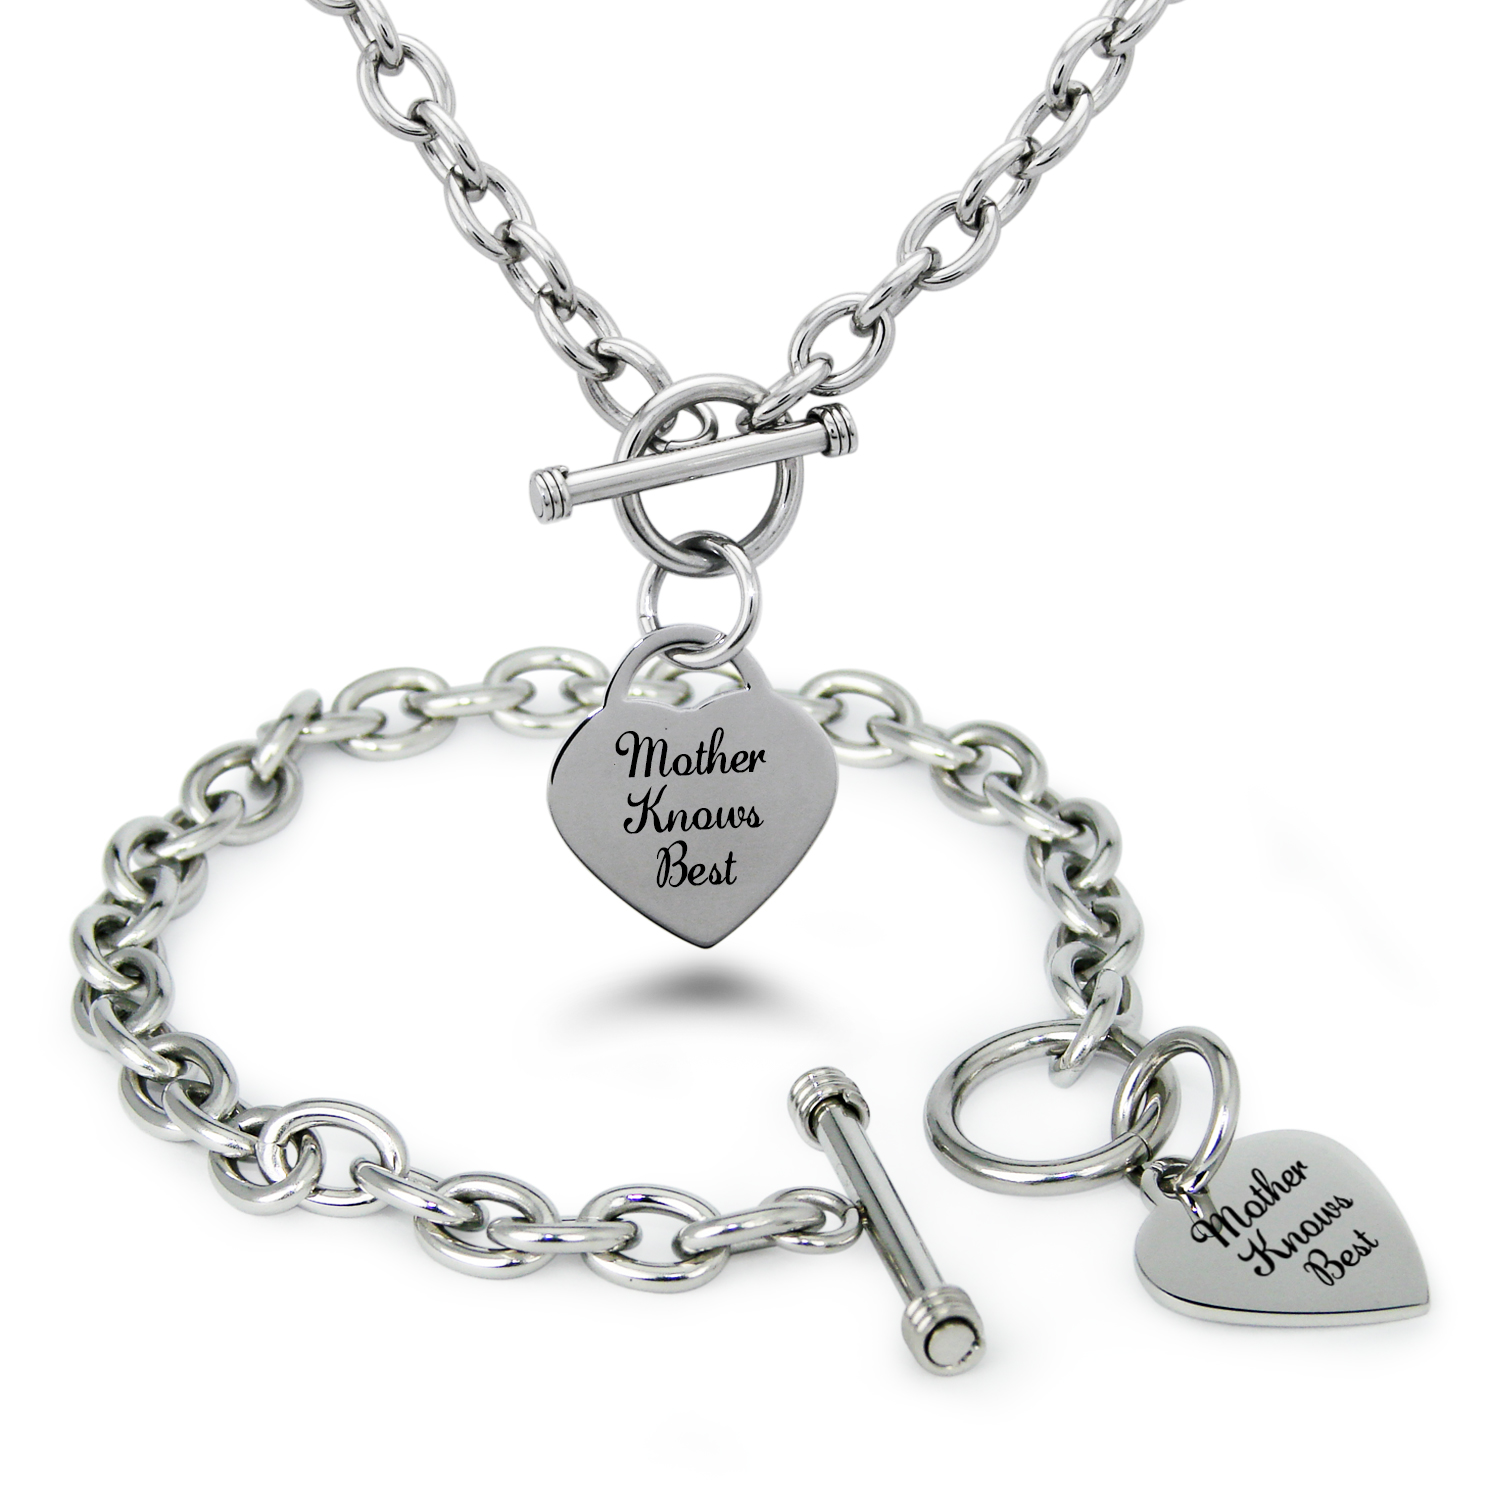 Stainless Steel Mother Knows Best Heart Charm Toggle Bracelet & Necklace